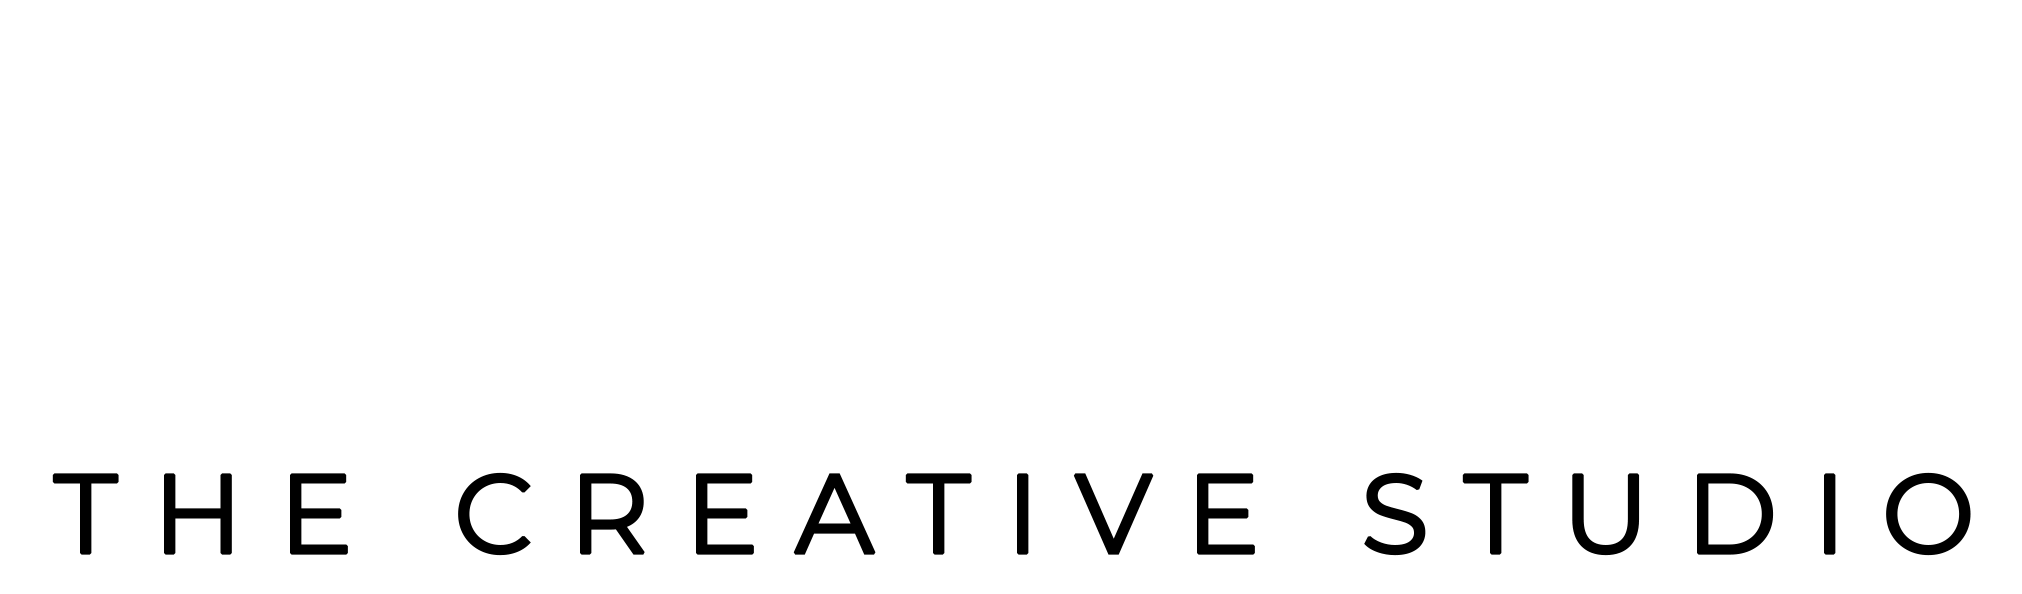 Balla - The Creative Studio